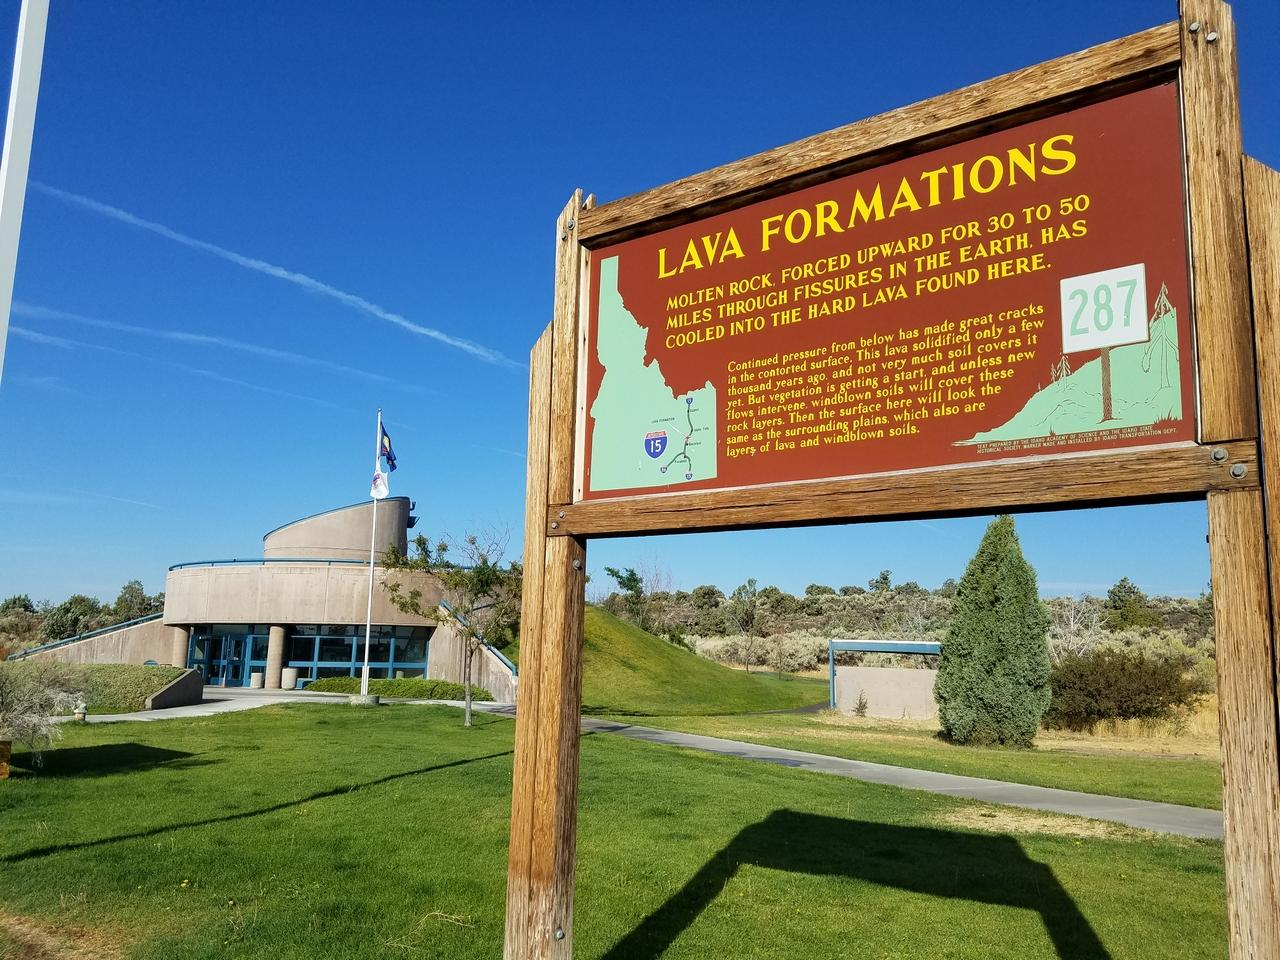 Lava Formations Rest Area